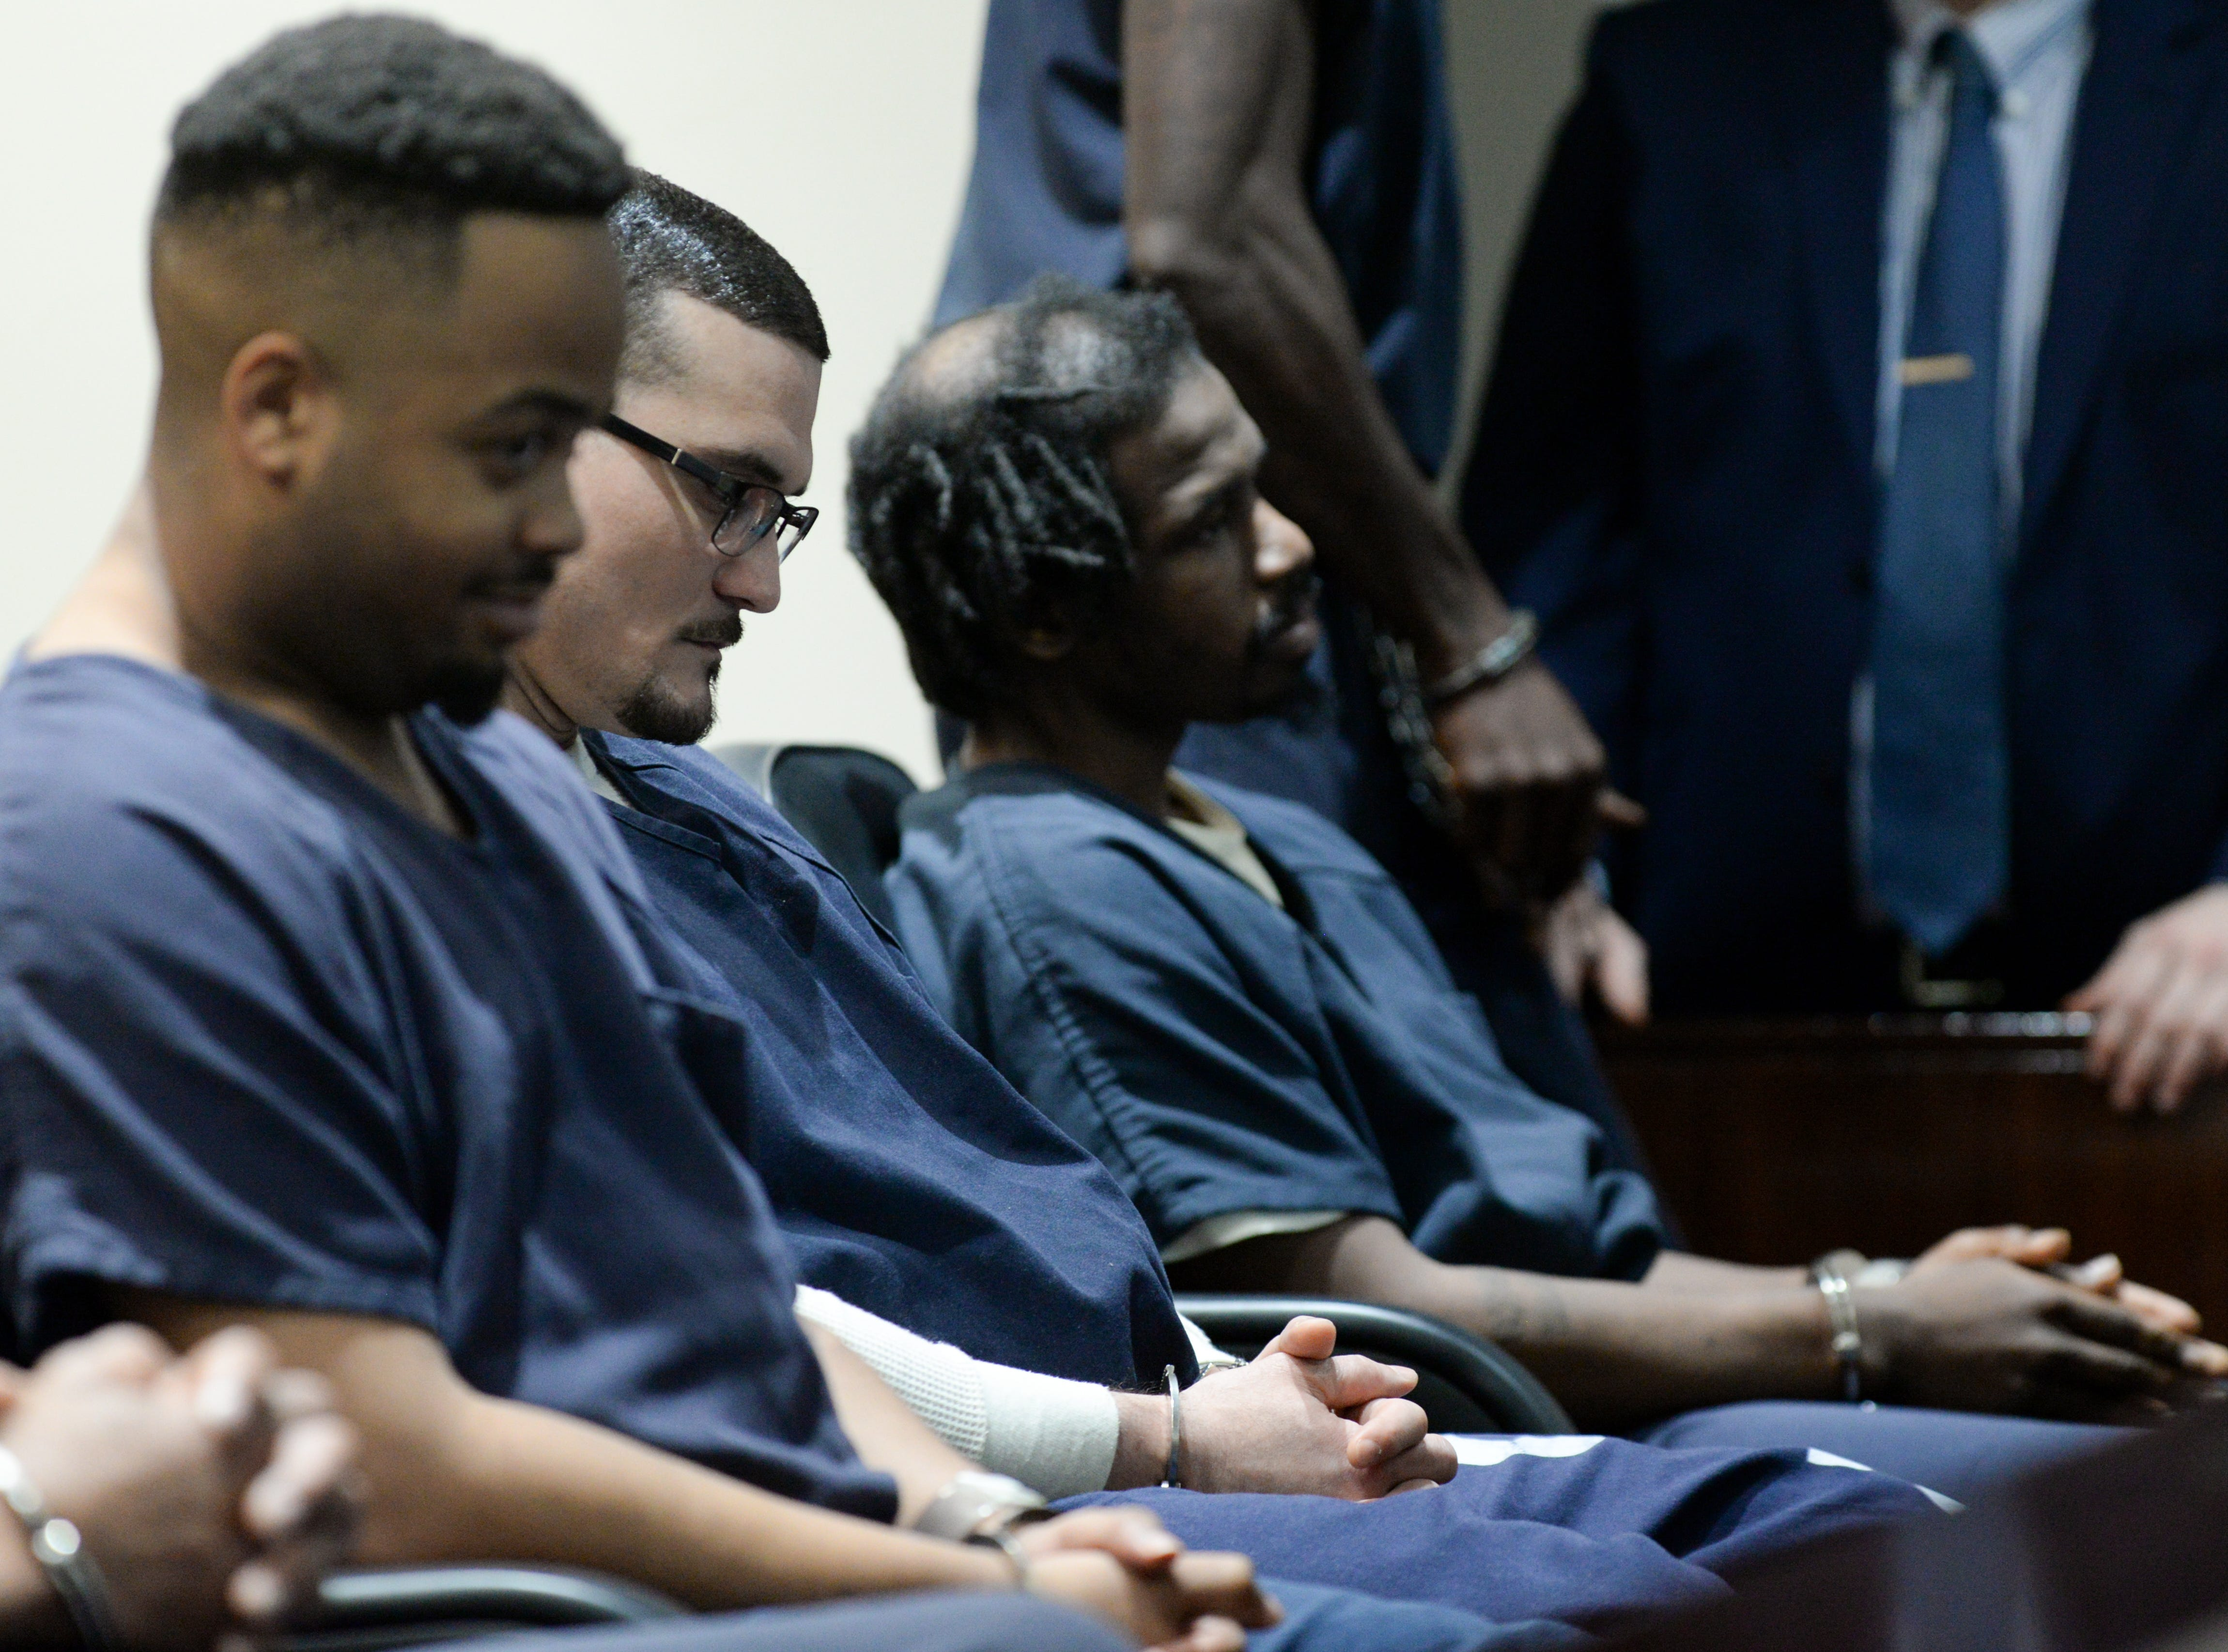 Sigfredo Garcia, center, sits with his handcuffed hands folded in a line of other inmates in a Leon County Courthouse courtroom Tuesday, May 7, 2019. Garcia and his attorney Saam Zengeneh asked Leon County Circuit Judge James C. Hankinson for a continuance and were denied.